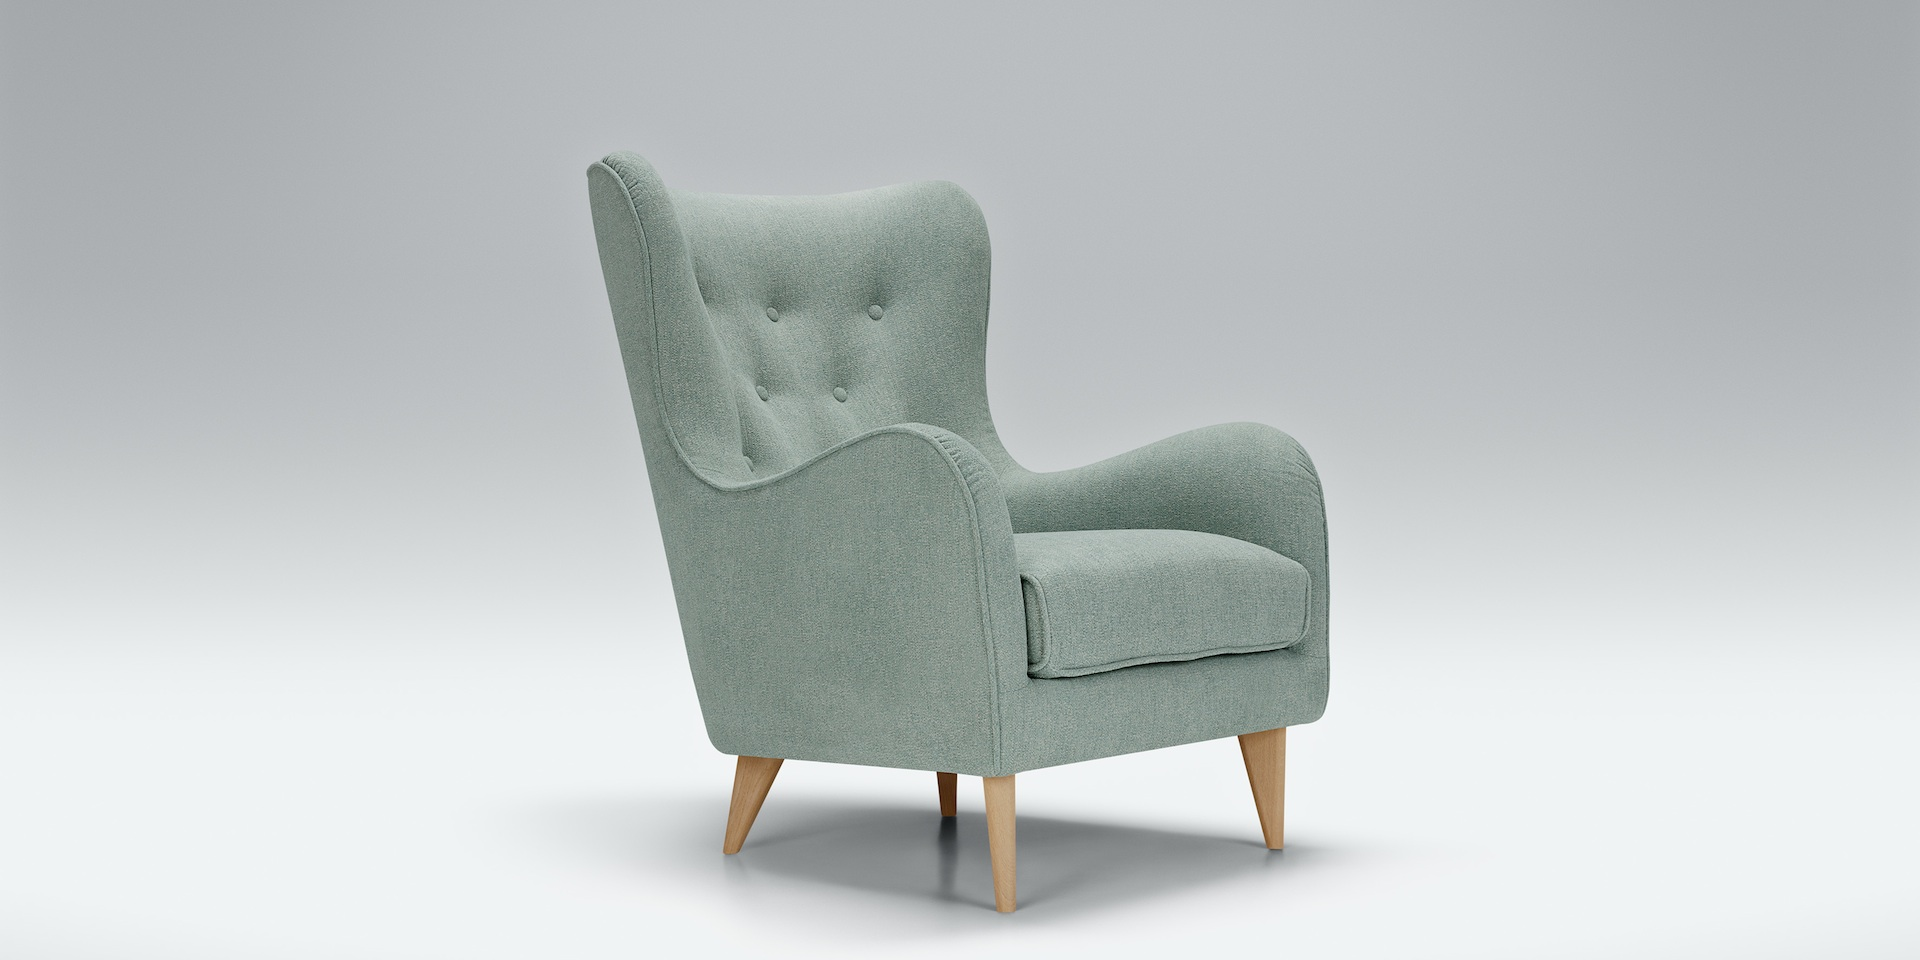 POLA_shadow_armchair_vireal7_light_turquoise_2